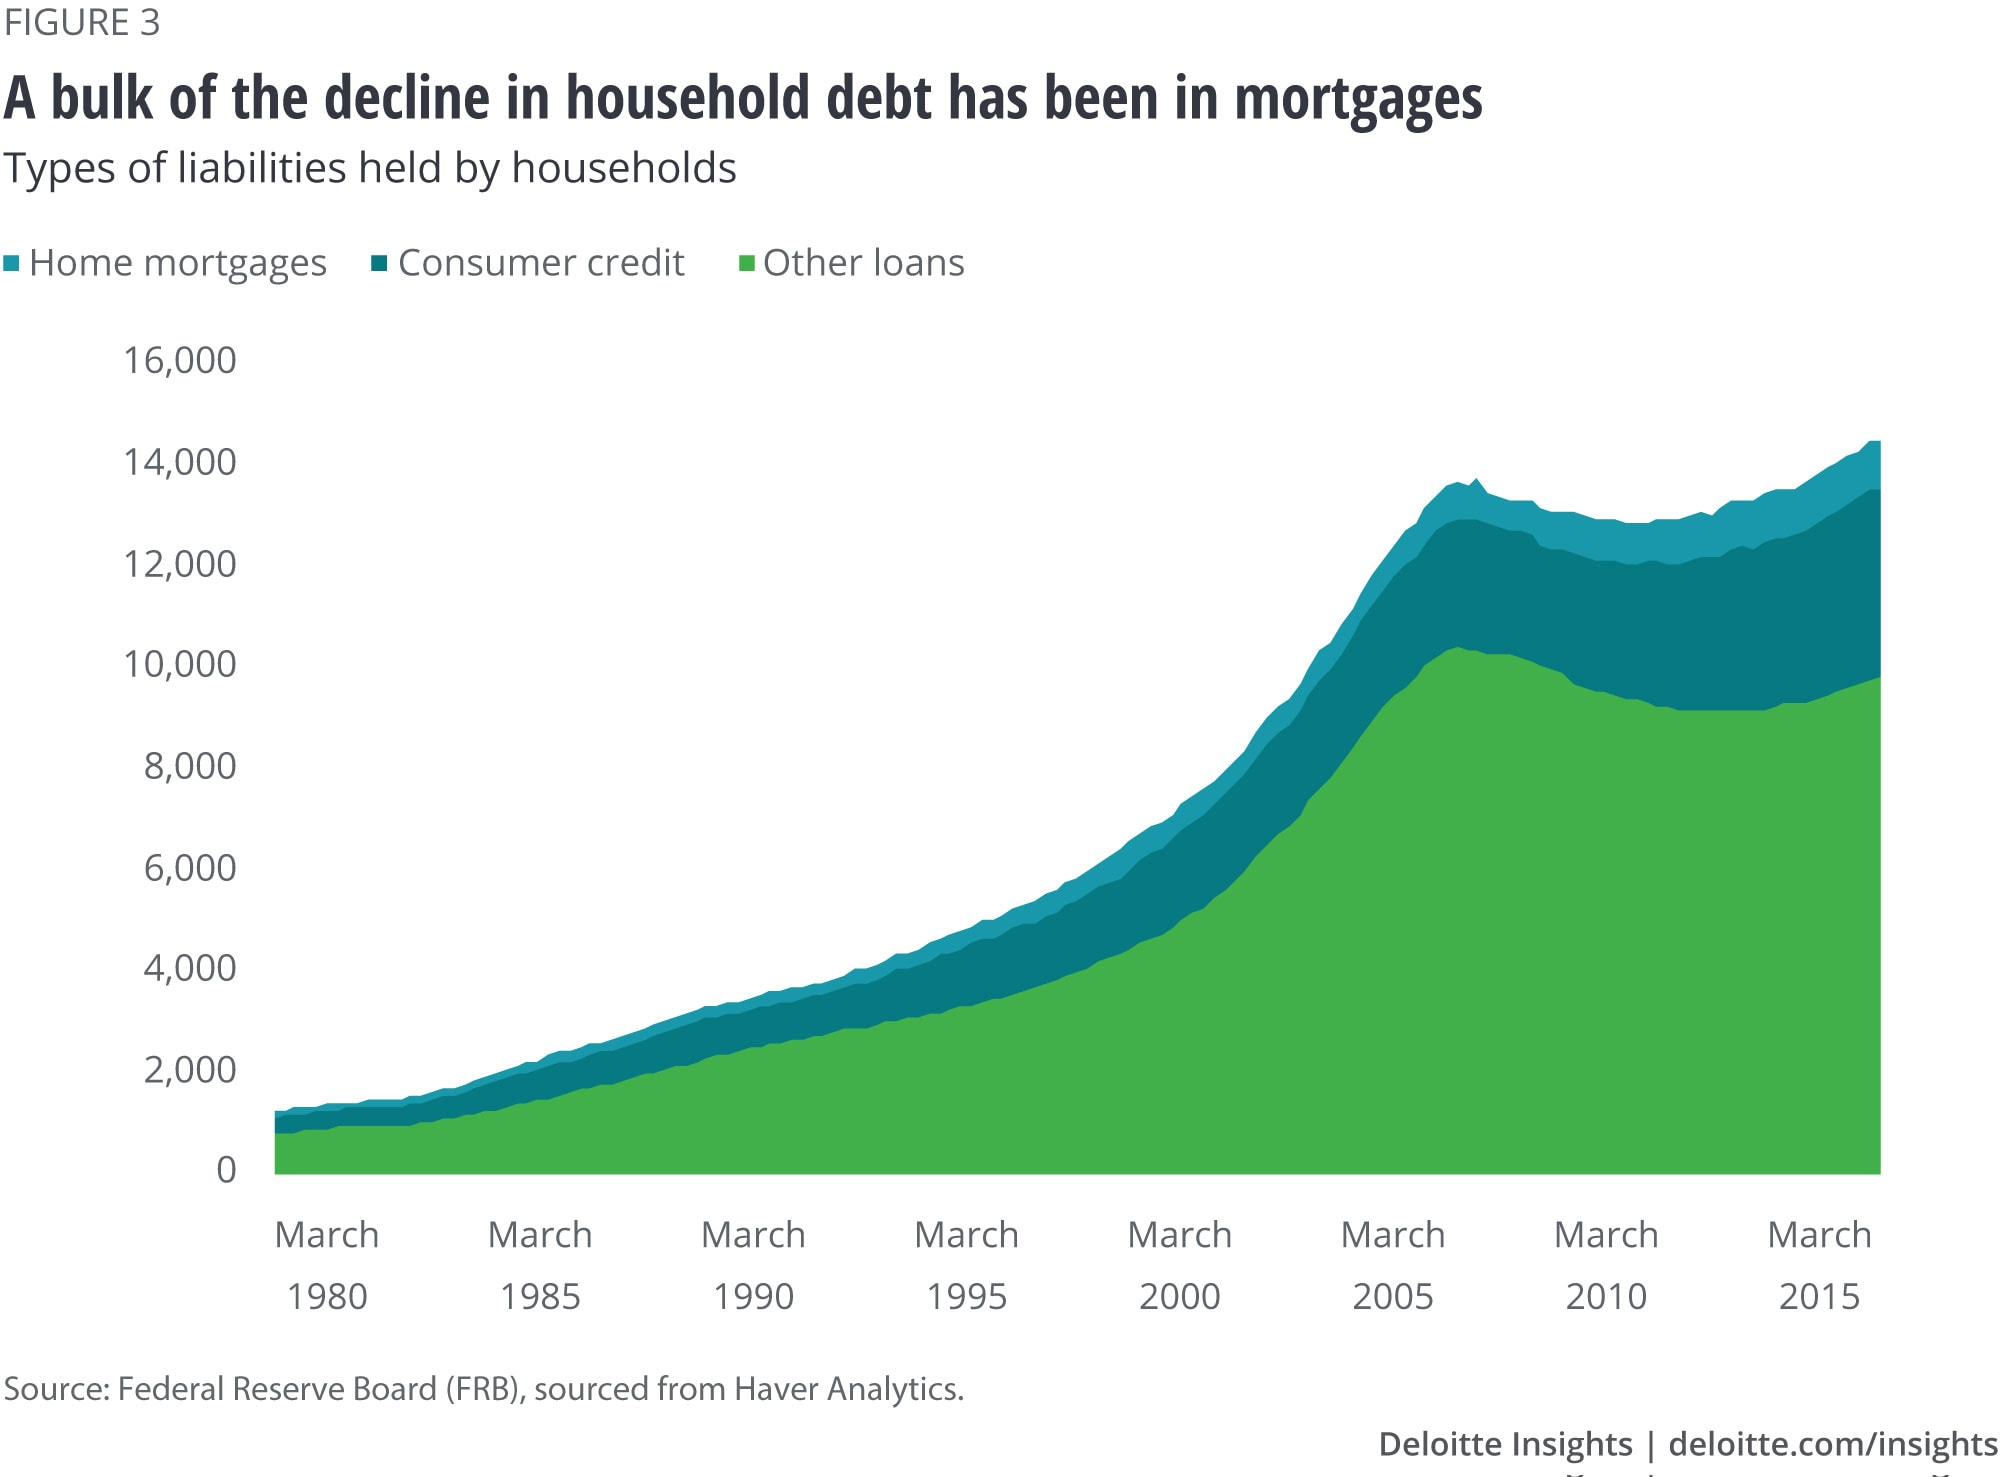 A bulk of the decline in household debt has been in mortgages